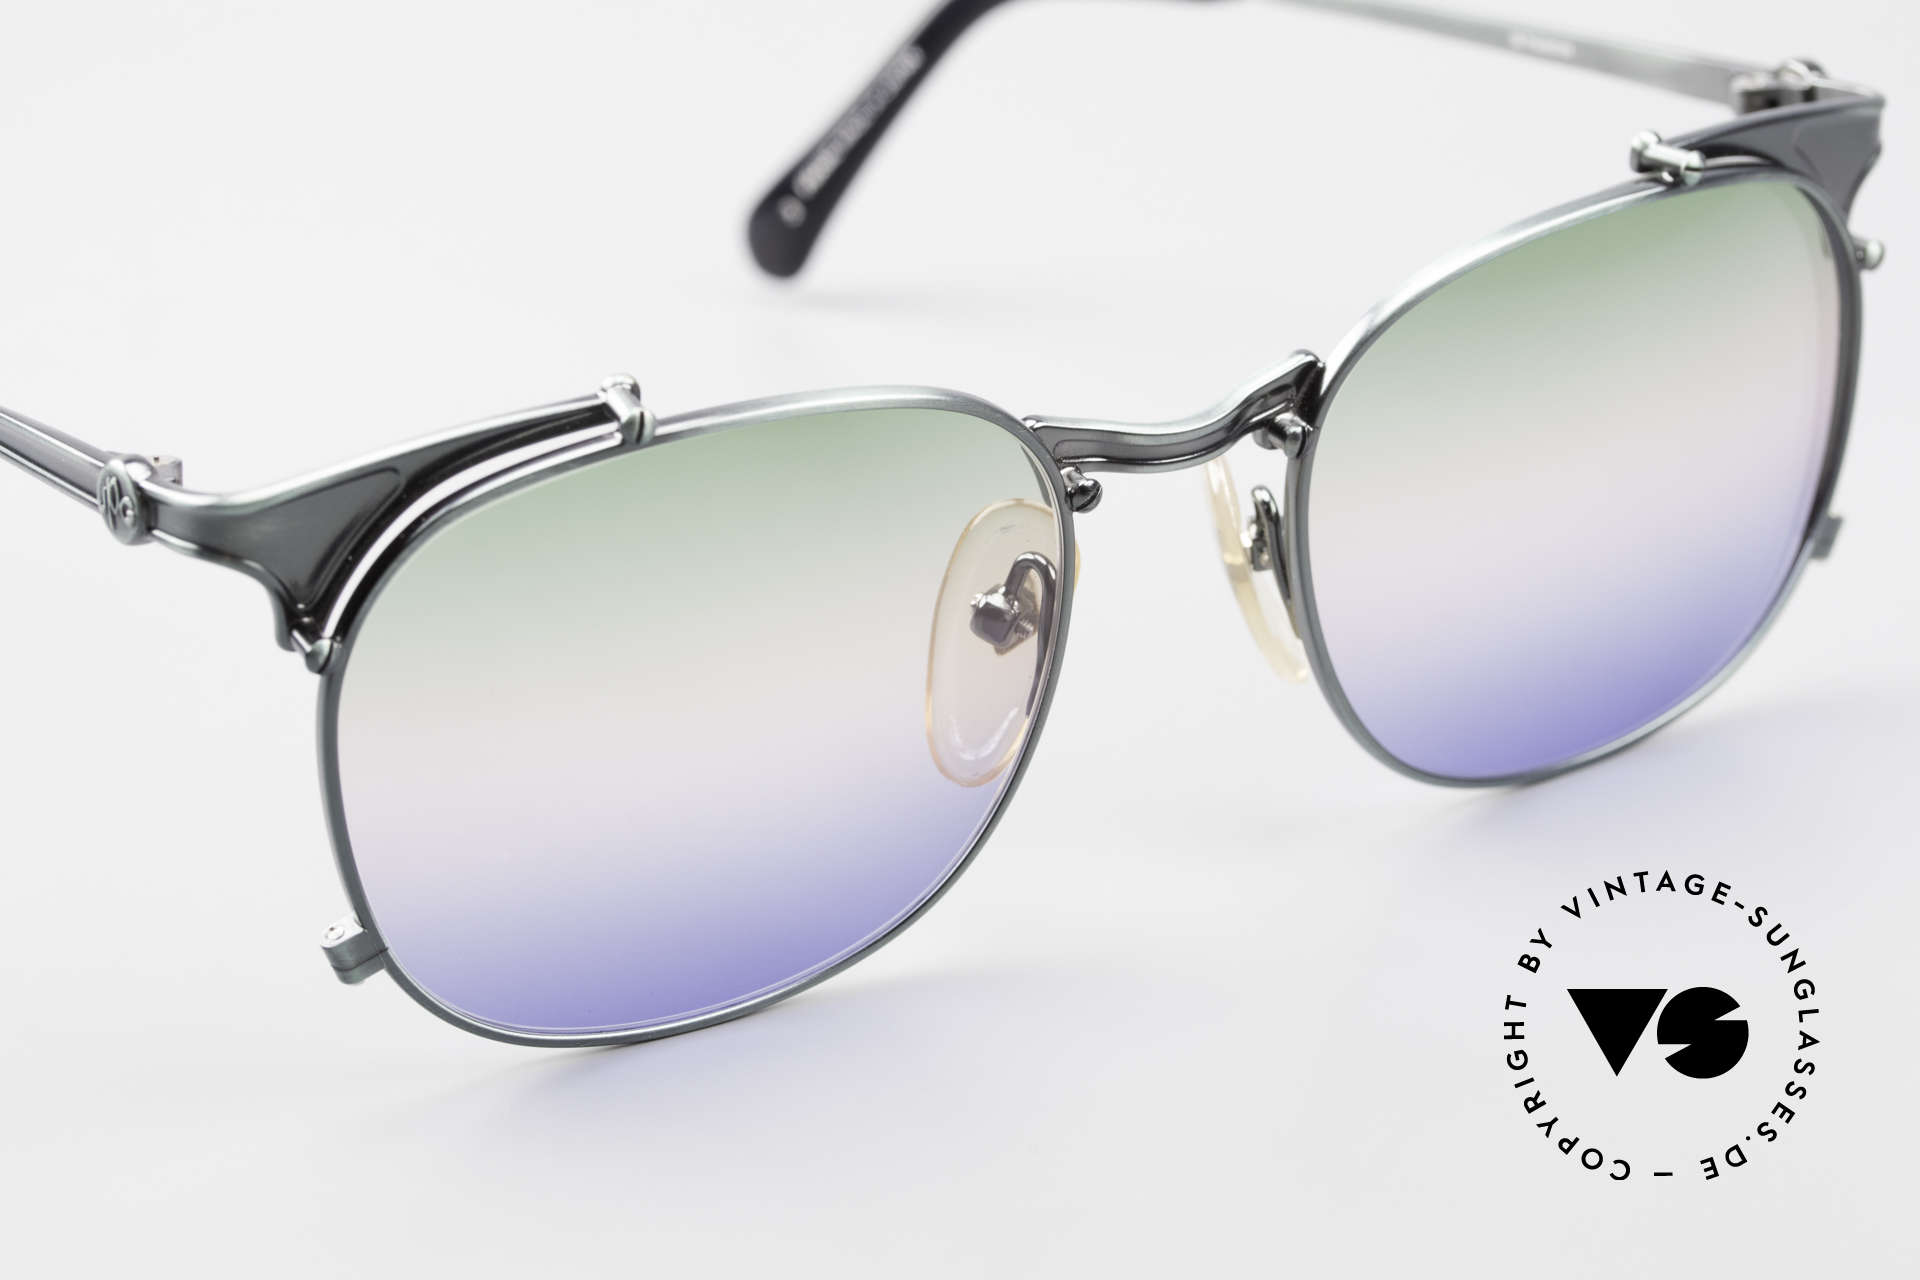 Jean Paul Gaultier 56-2175 Rare Tricolored Sun Lenses, unused (like all our Haute Couture sunglasses), Made for Men and Women